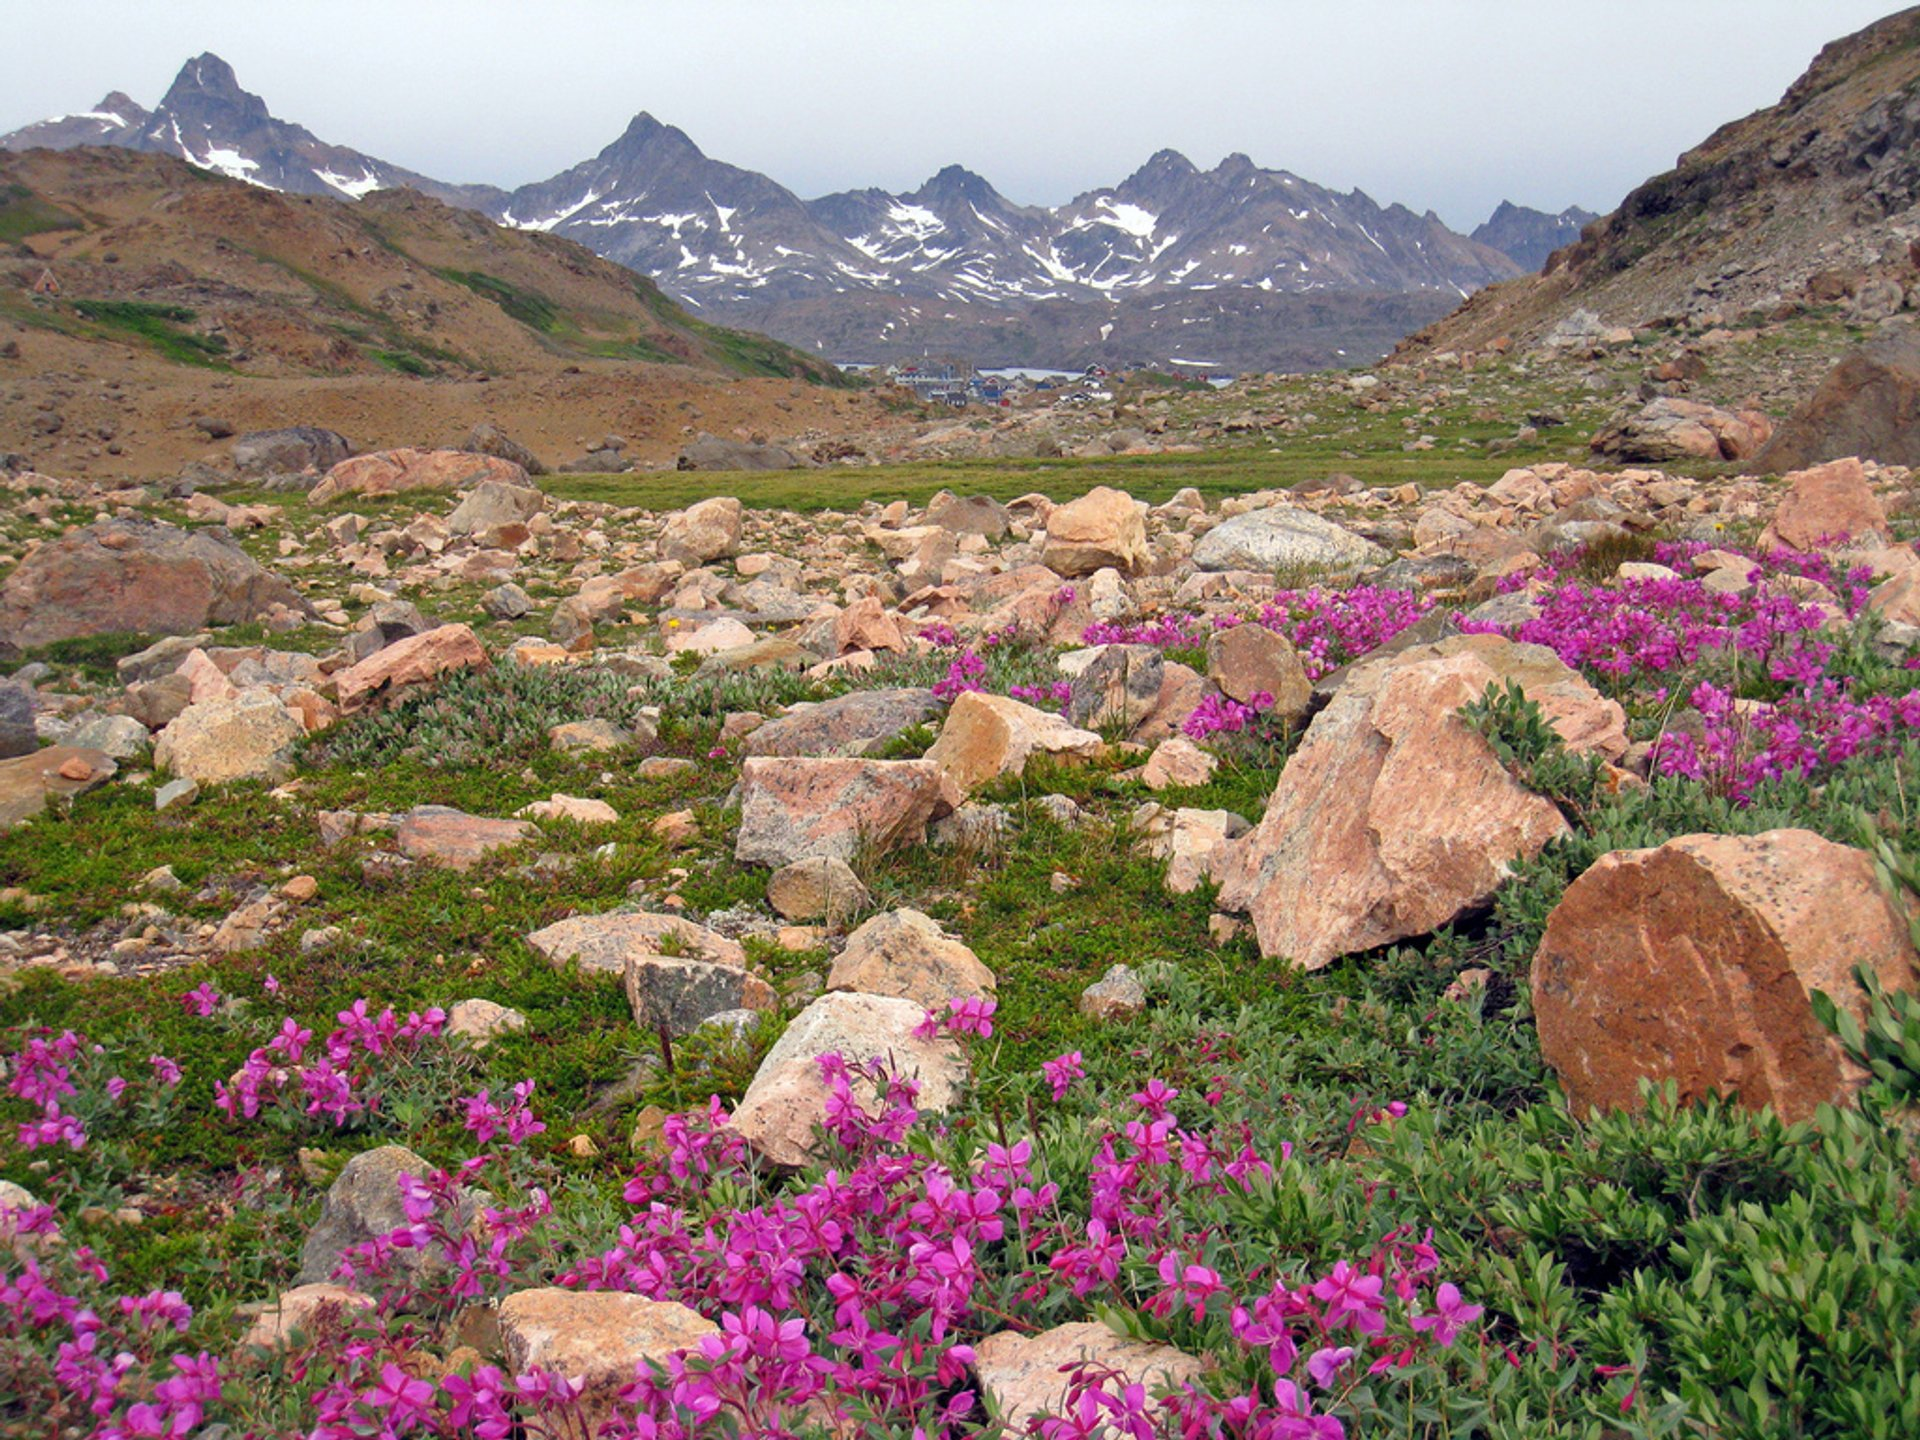 Flower Valleys Blooming in Greenland 2020 - Best Time